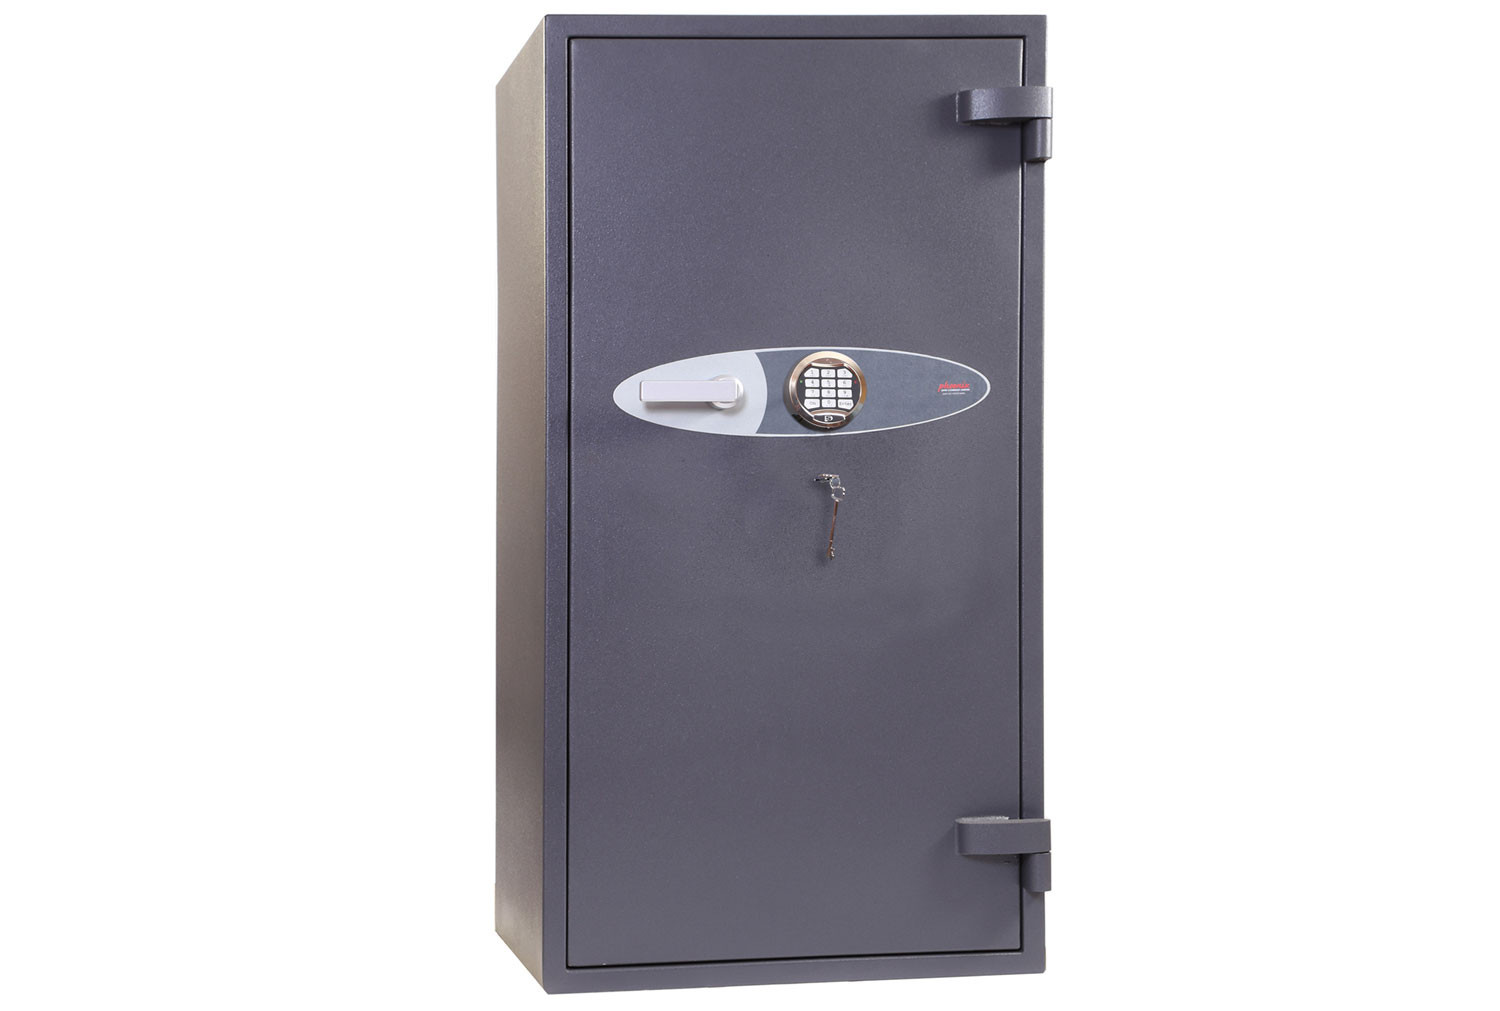 Phoenix Planet HS6075E High Security Safe With Electronic Lock (246ltrs)